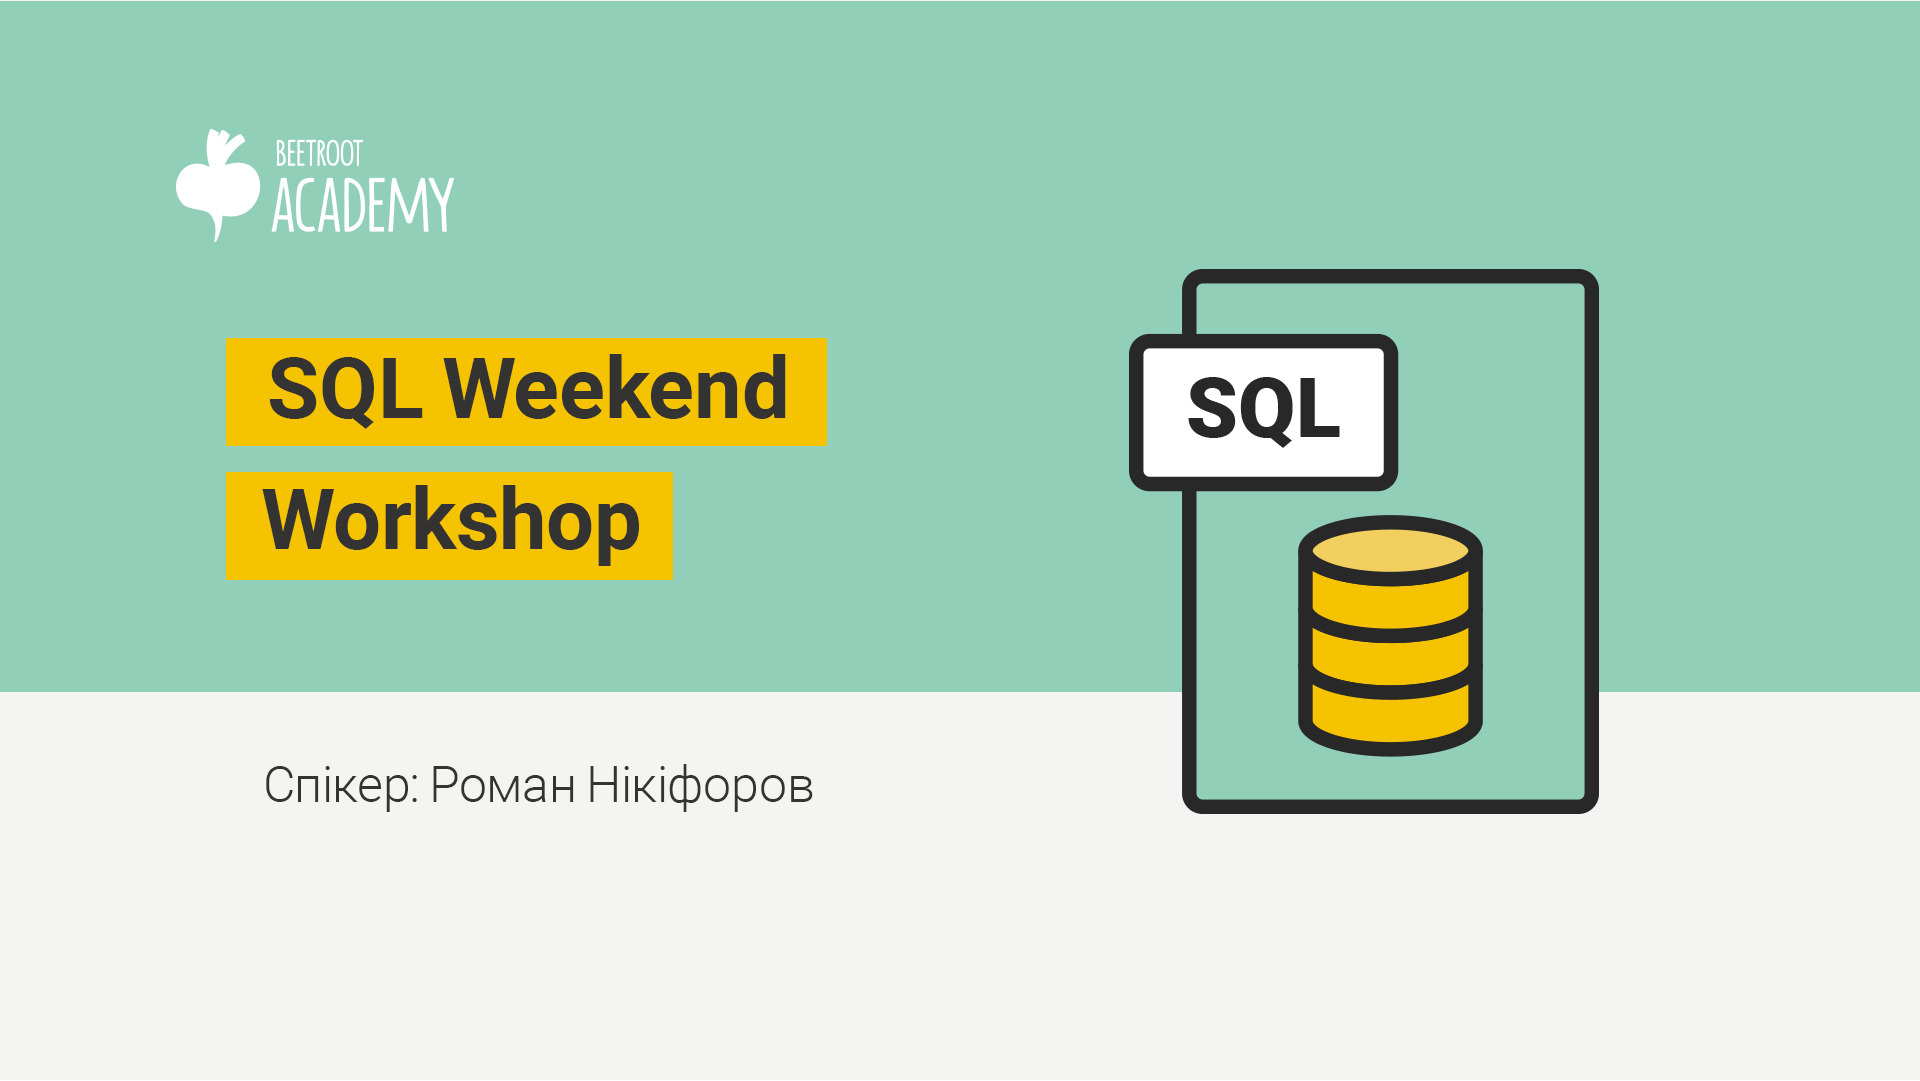 SQL Weekend Workshop